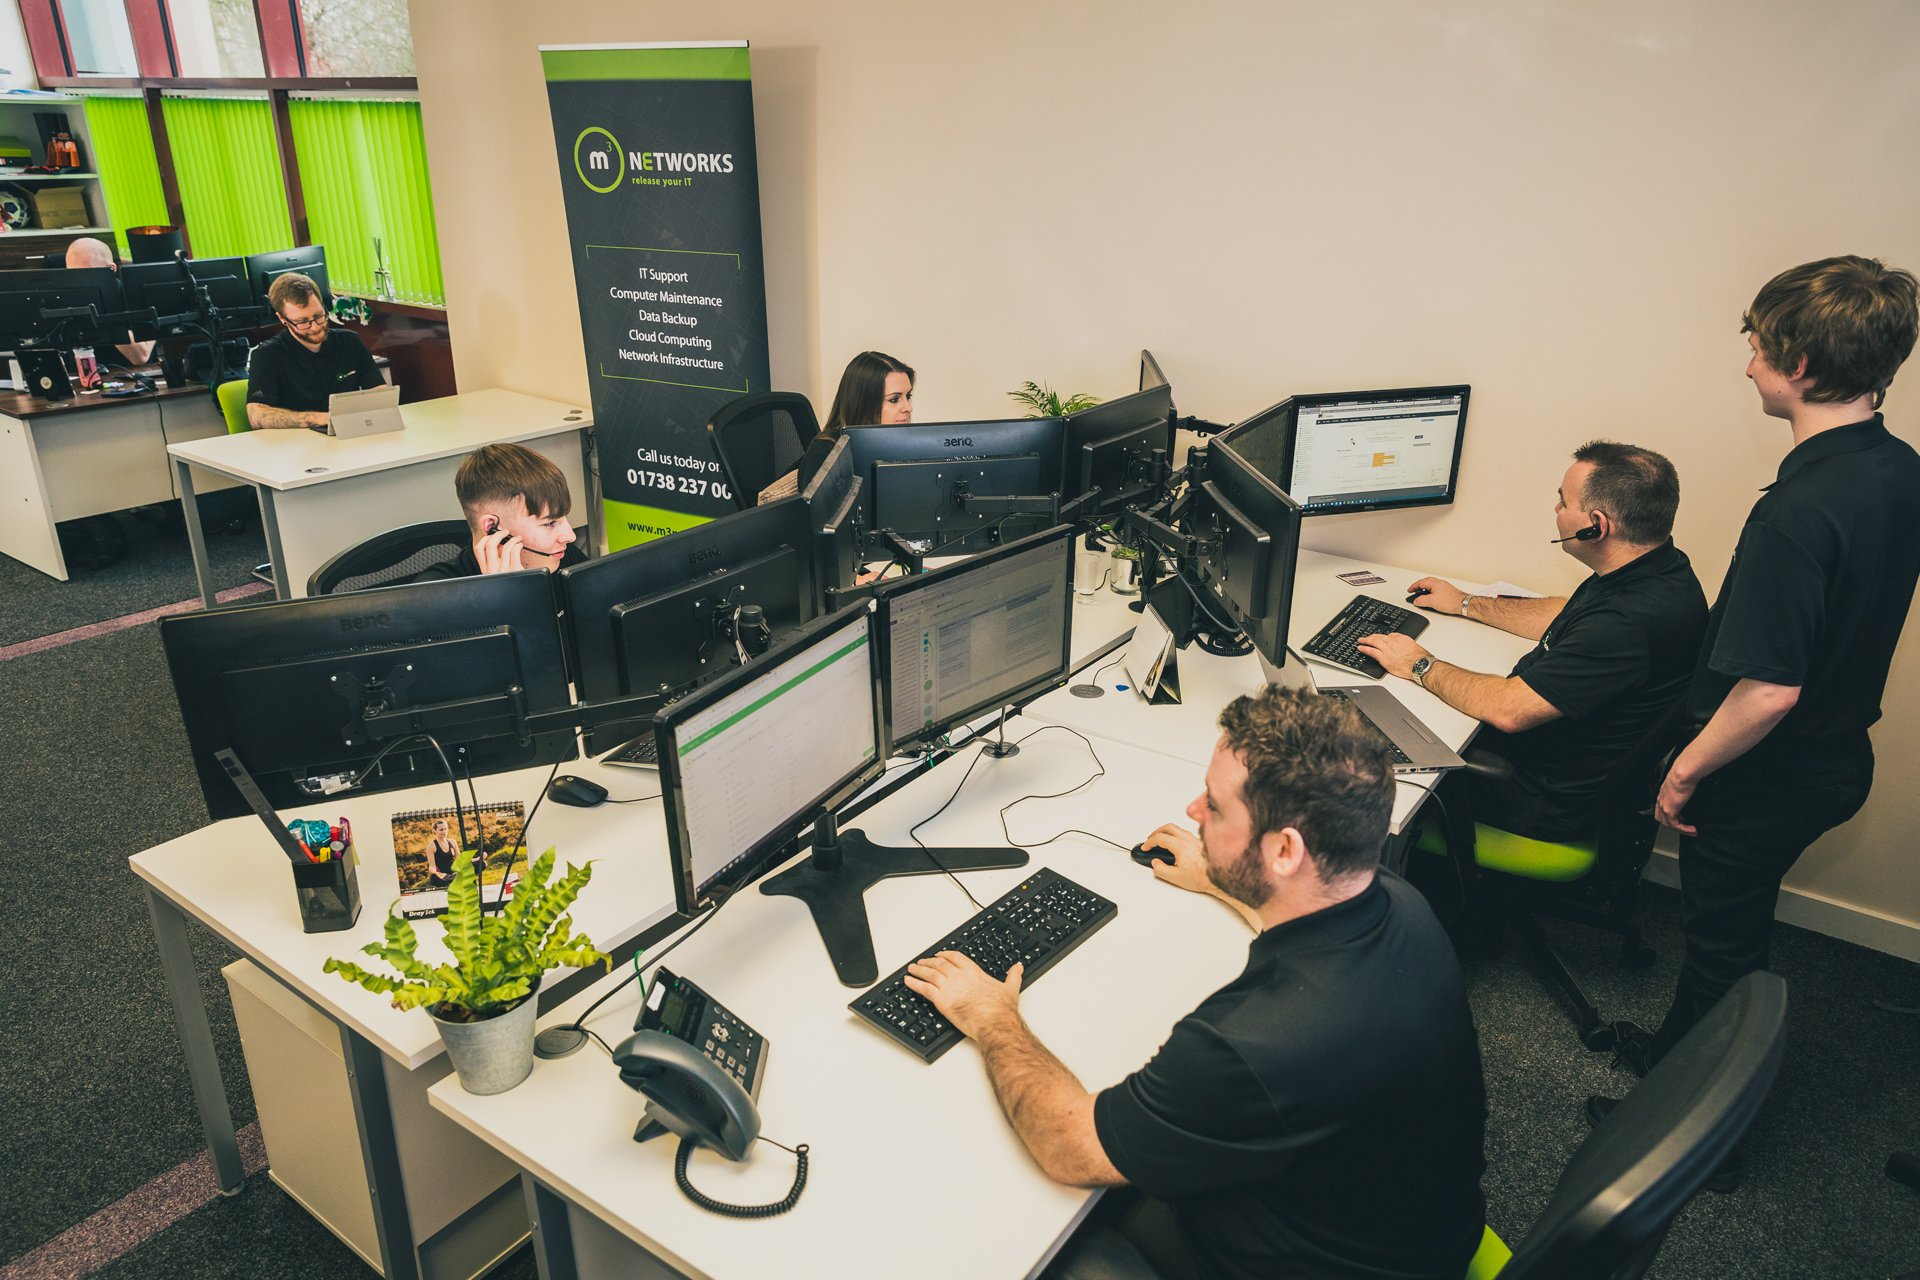 Photo of the m3 Networks team at work in the office